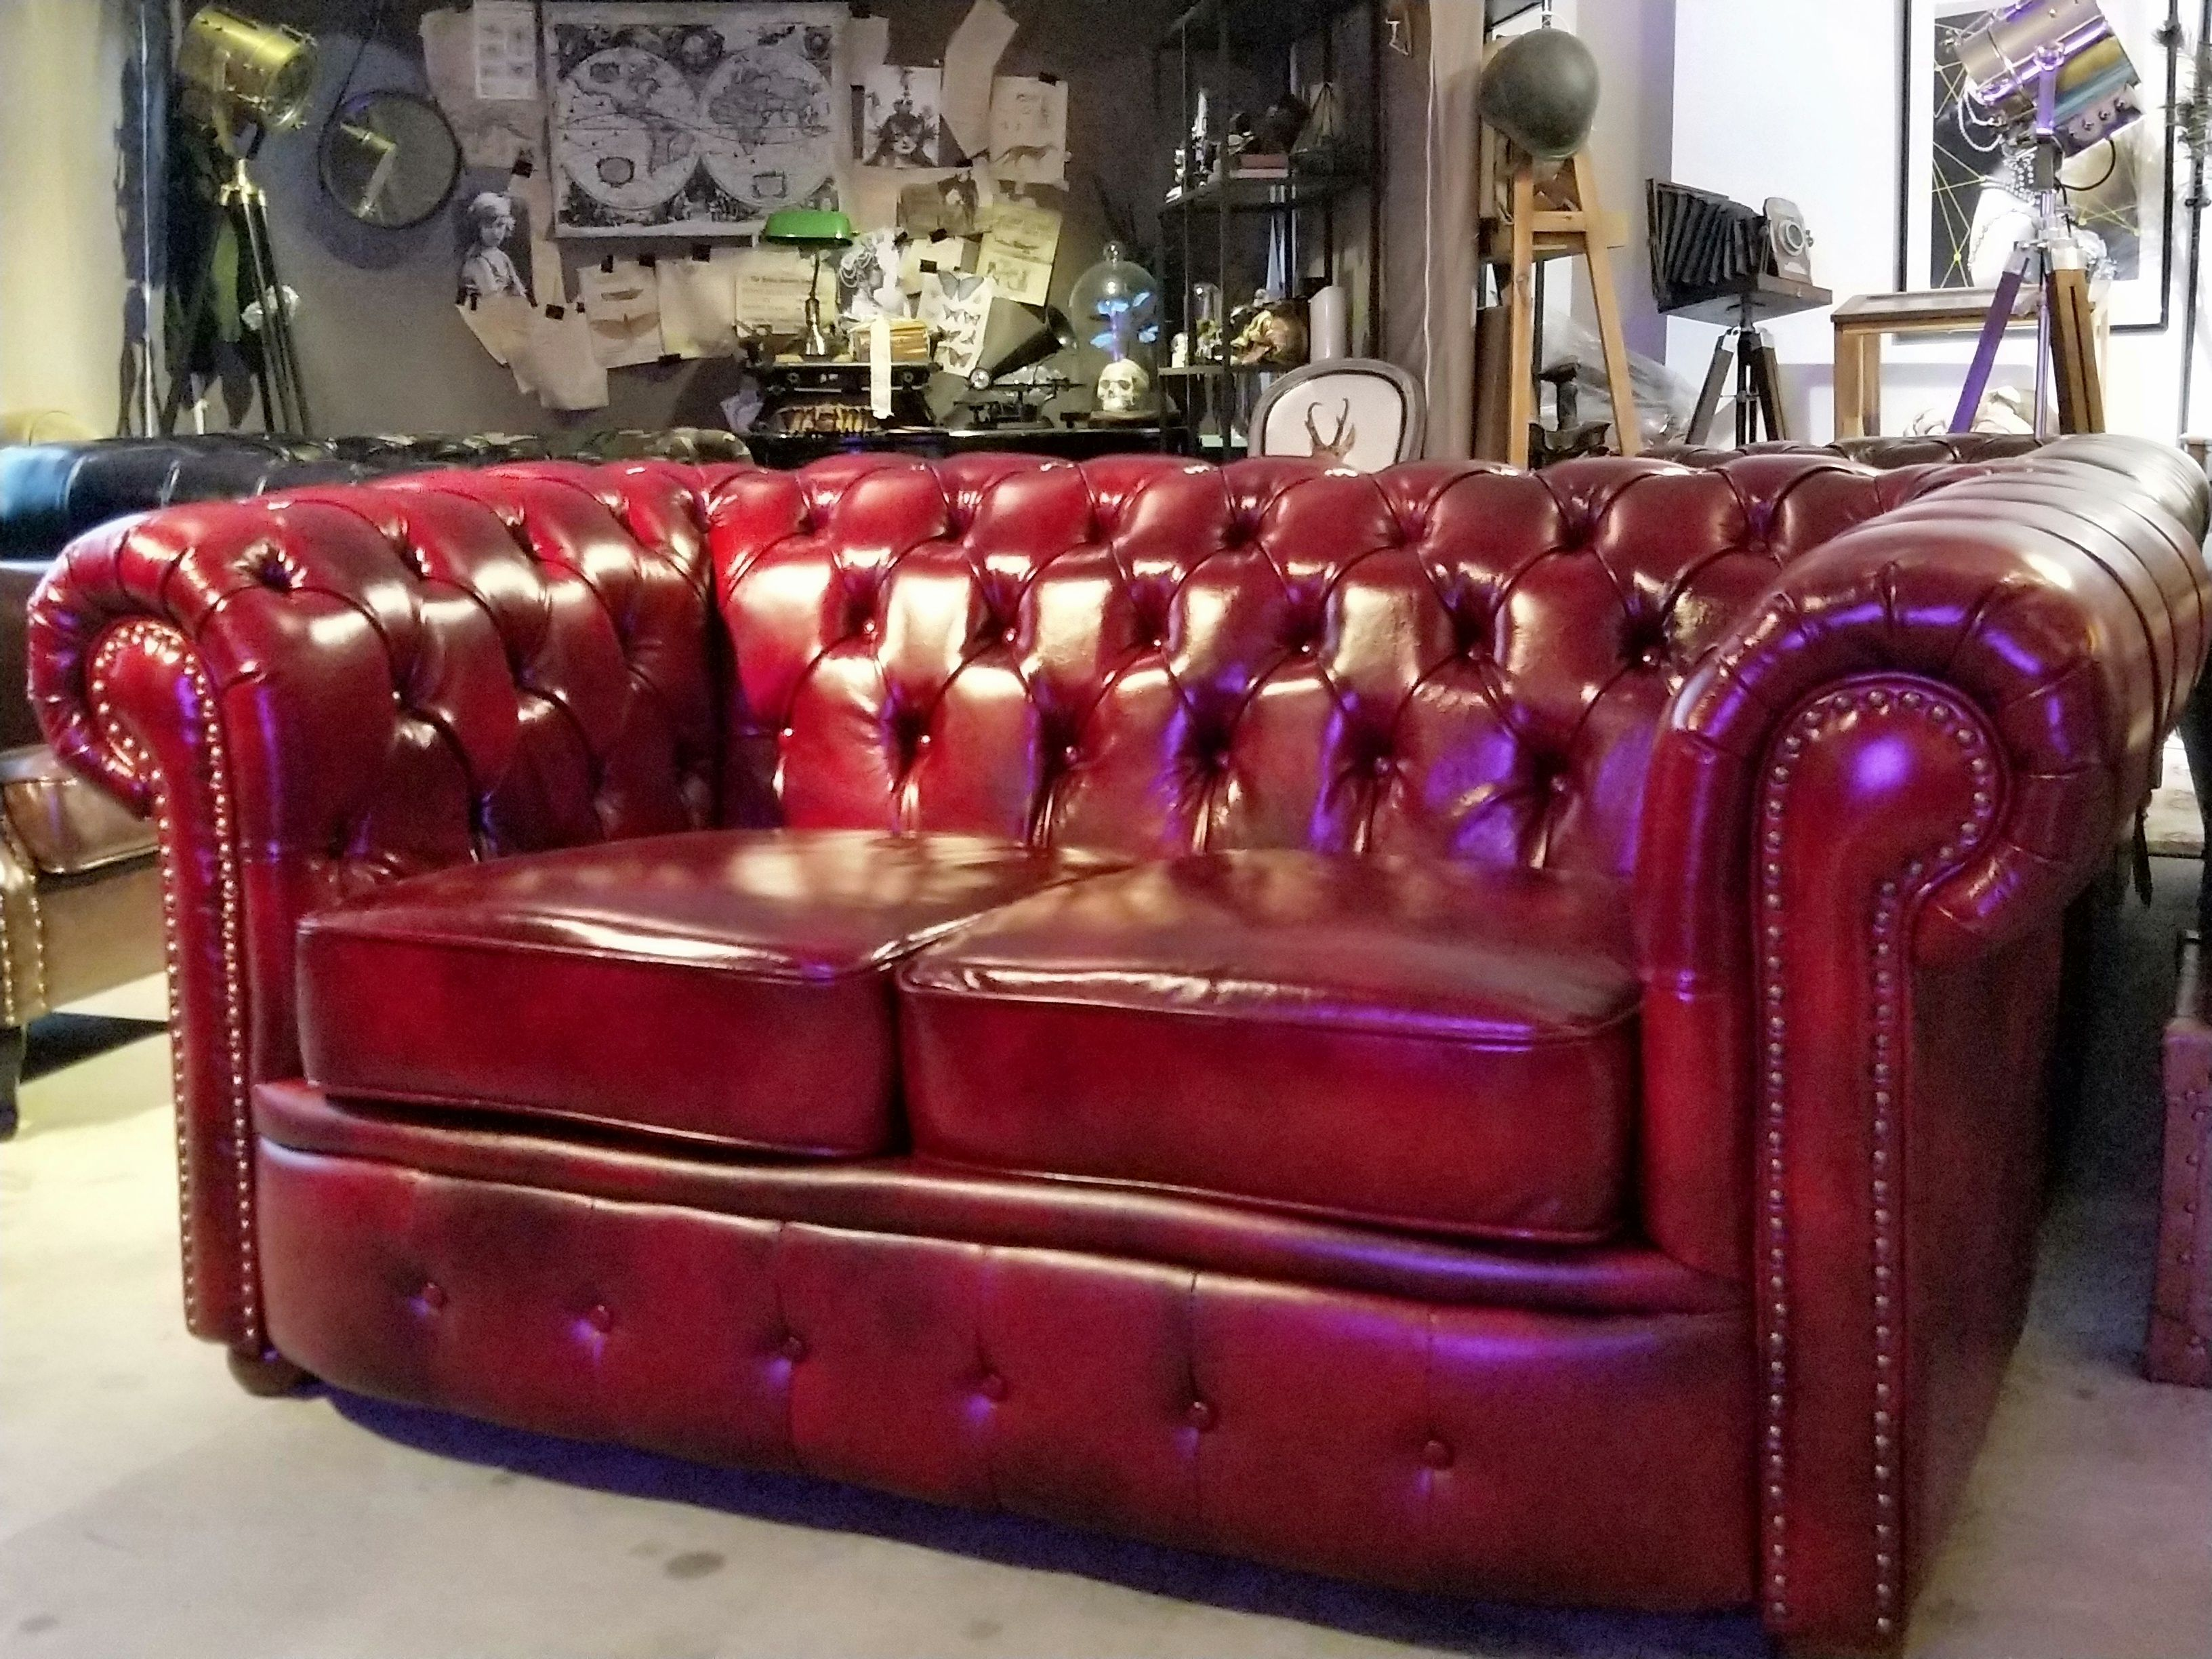 Superb Singapore Vintage Leather Sofa Oxblood Red Chesterfield Cjindustries Chair Design For Home Cjindustriesco